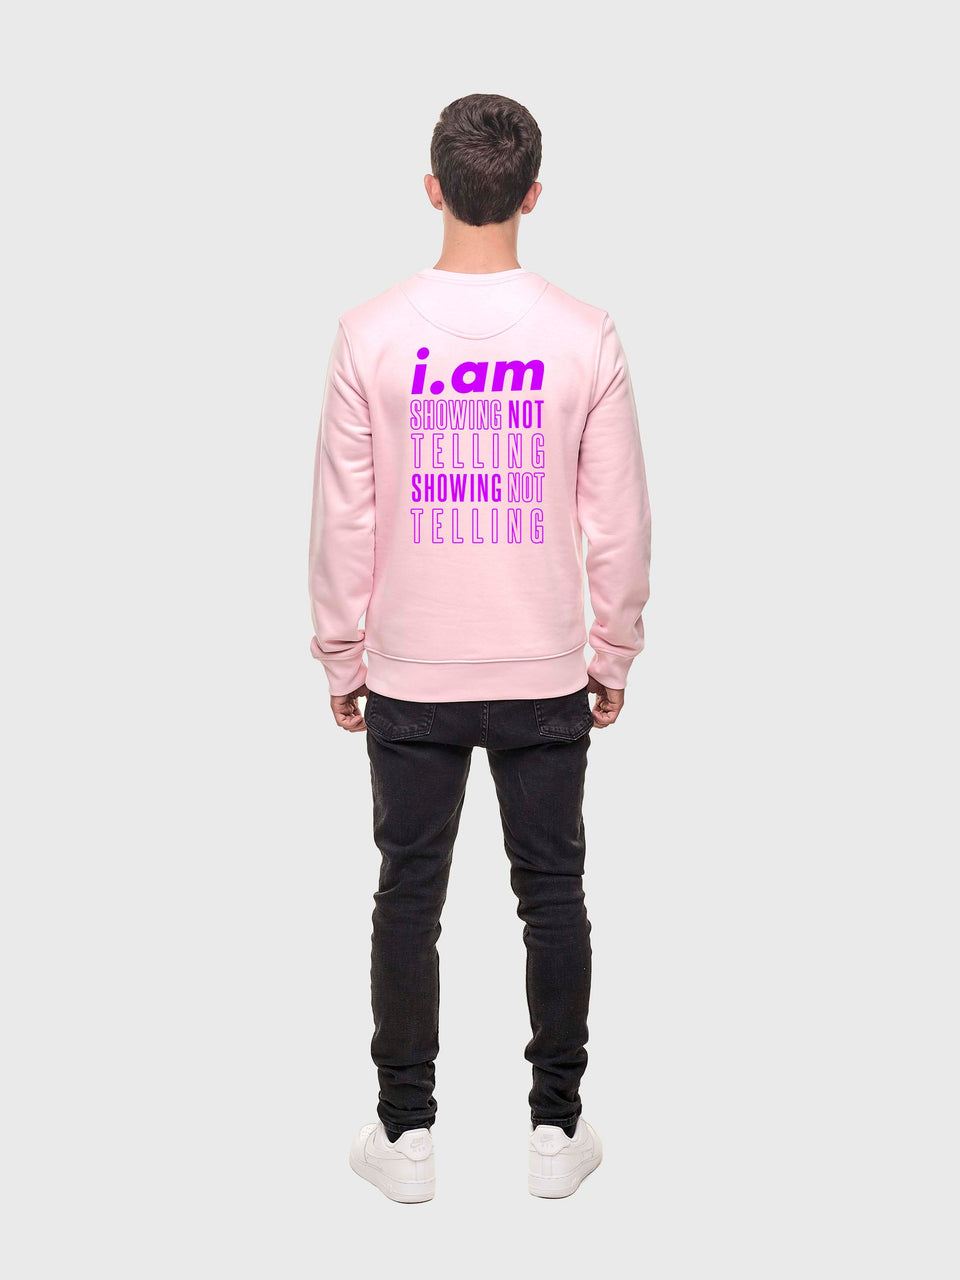 Showing not telling - Pink - Unisex sweatshirt